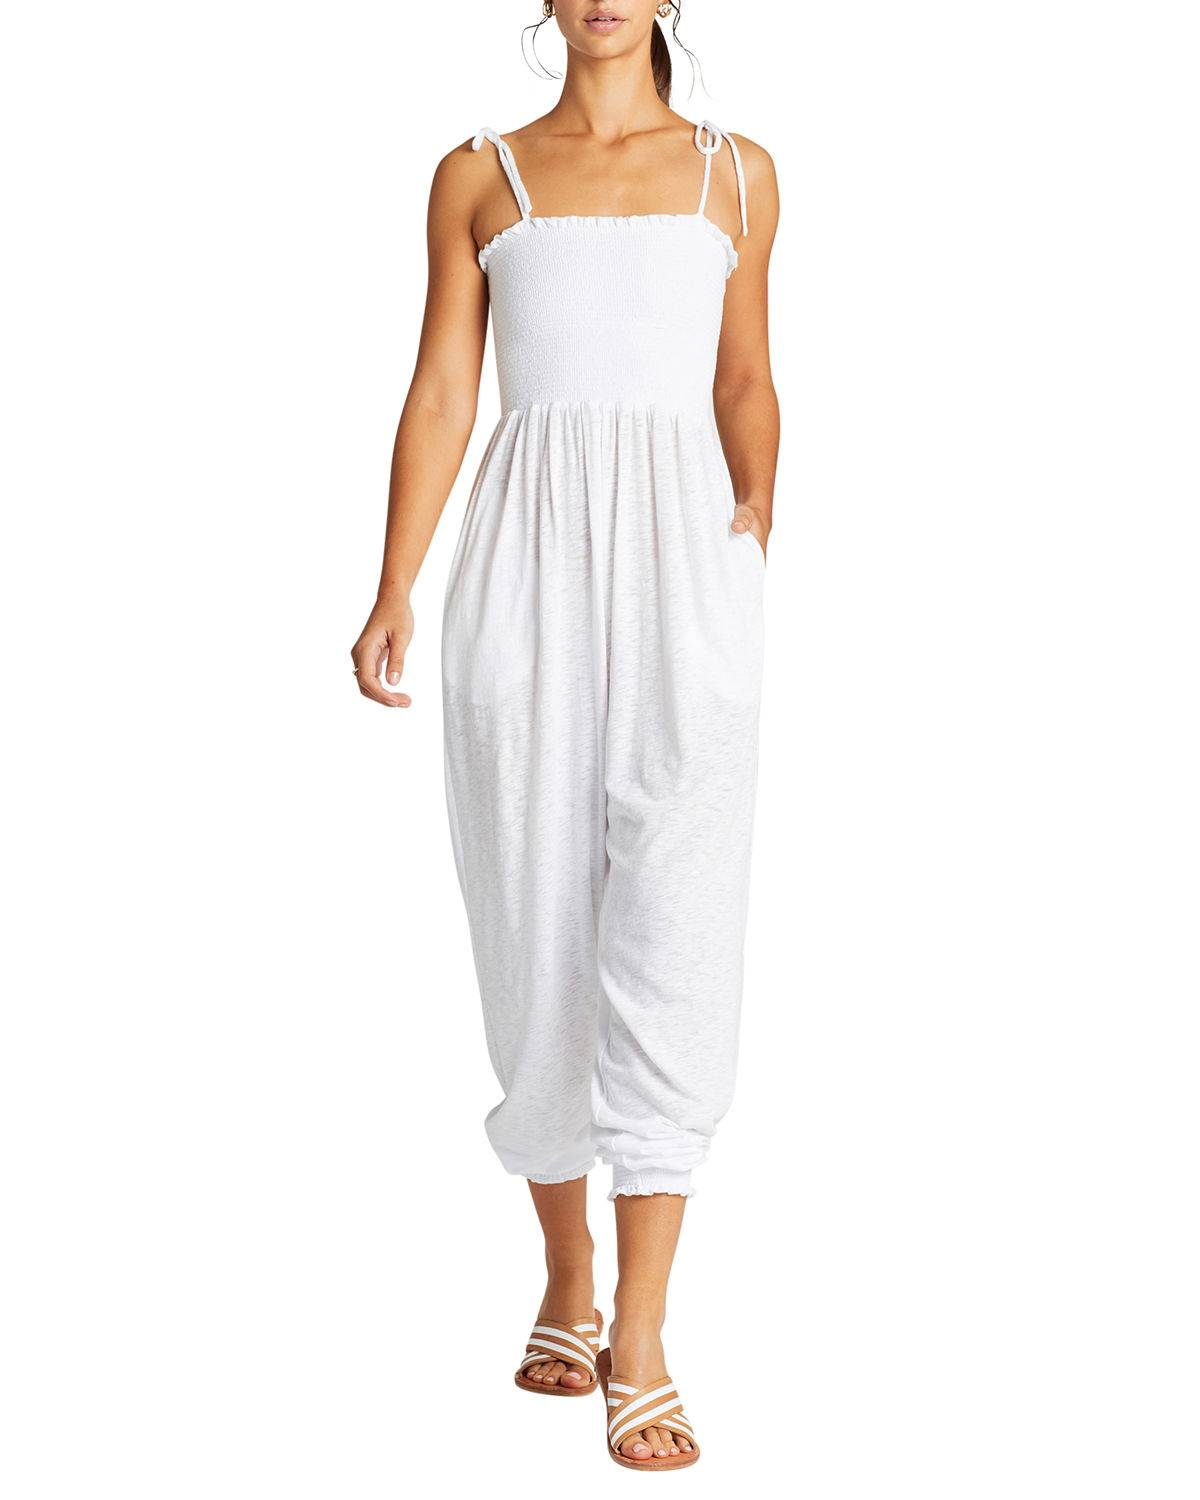 Vitamin A Moonlight Coverup Jumpsuit - Size: Large